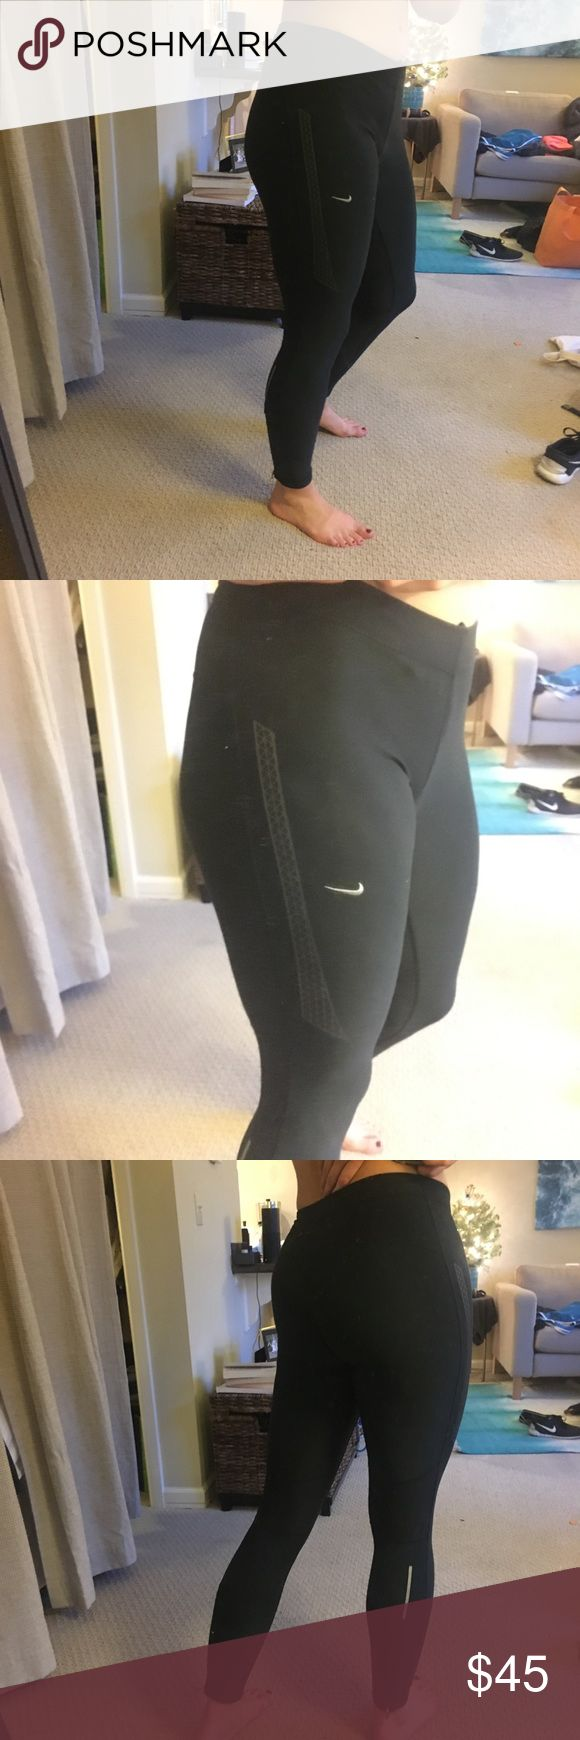 Nike Running Tights Breathable and stretchy Nike running tights.  • Hidden zipper pocket  • Reflective • Zip ankles  • Inner toe waistband • Brand new condition Nike Pants Track Pants & Joggers